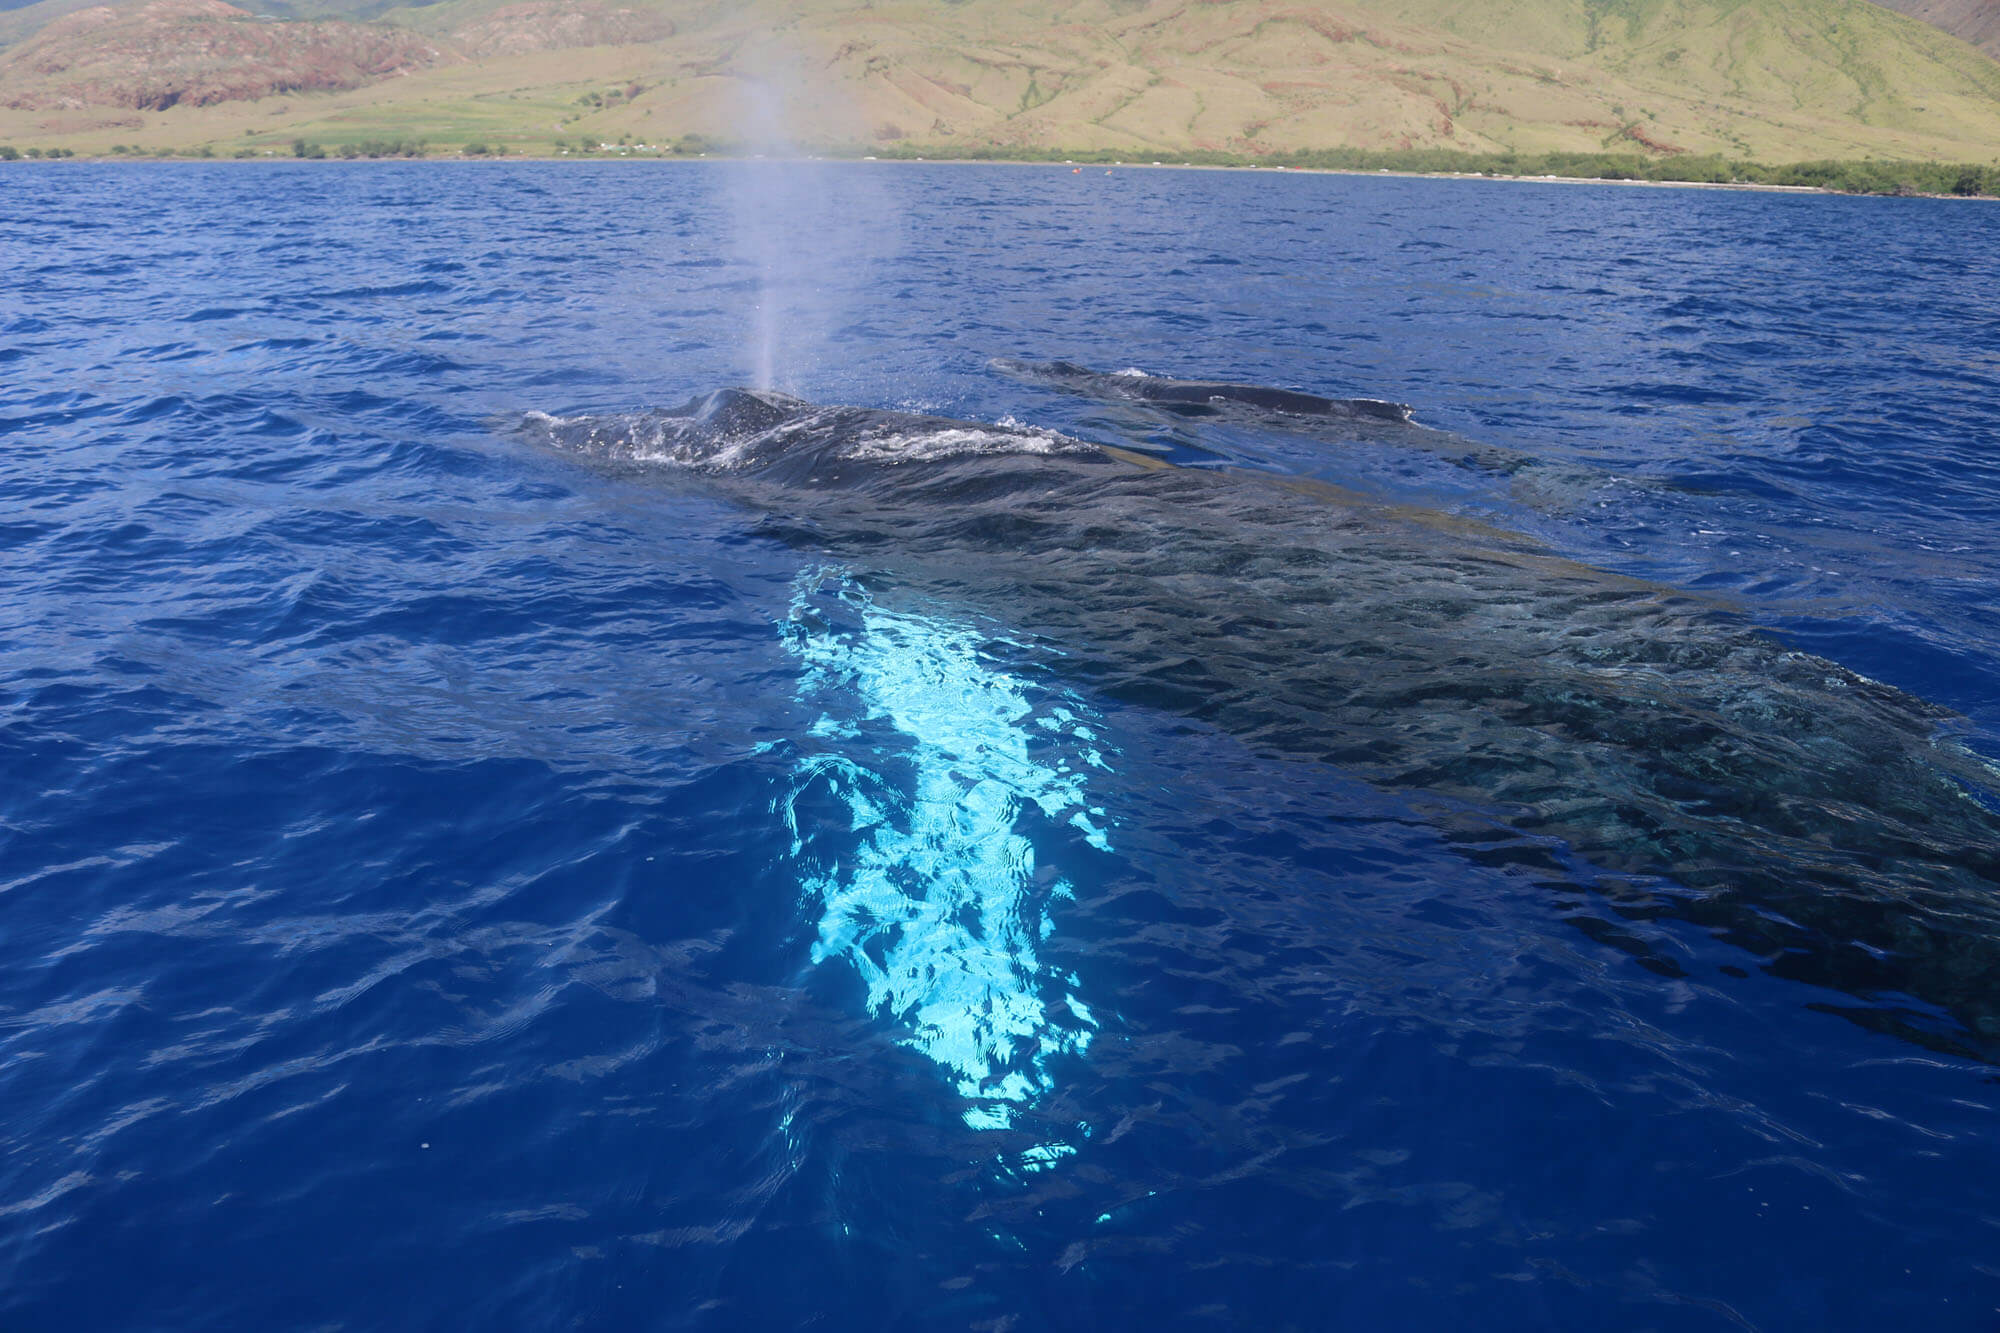 Maui Whale Watching Boat Charter Tours